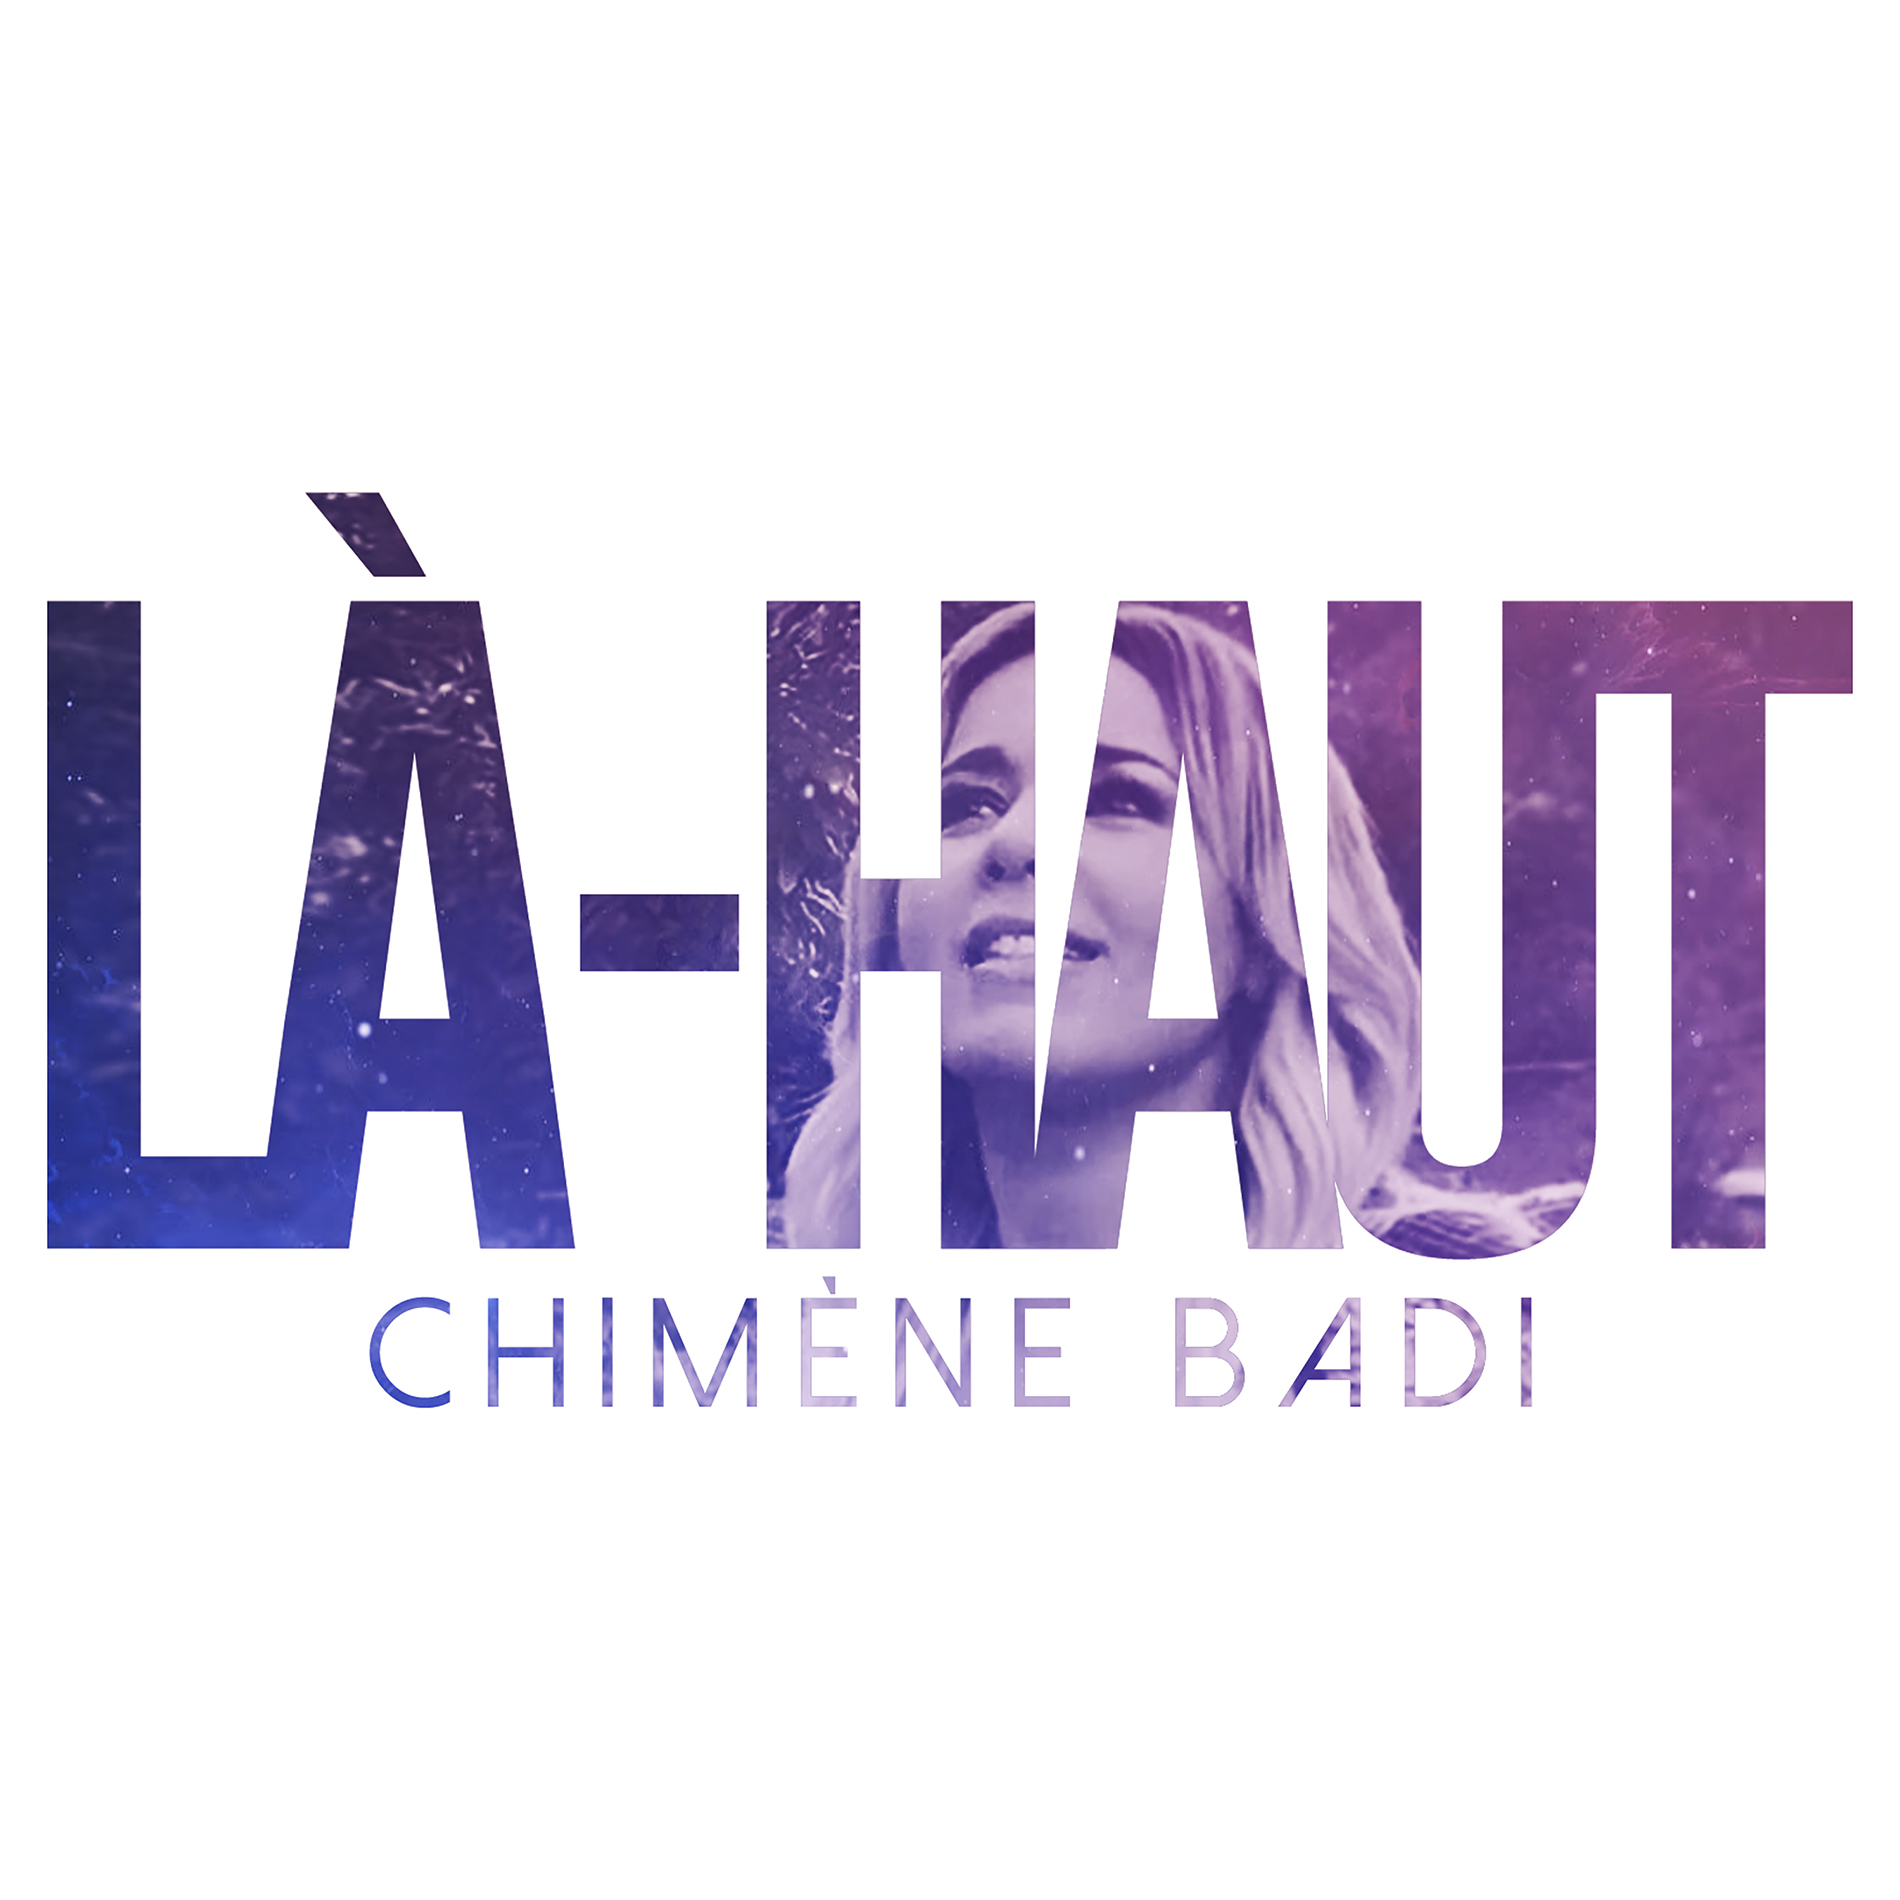 cover album Chimène Badi 2019. Album Là-haut